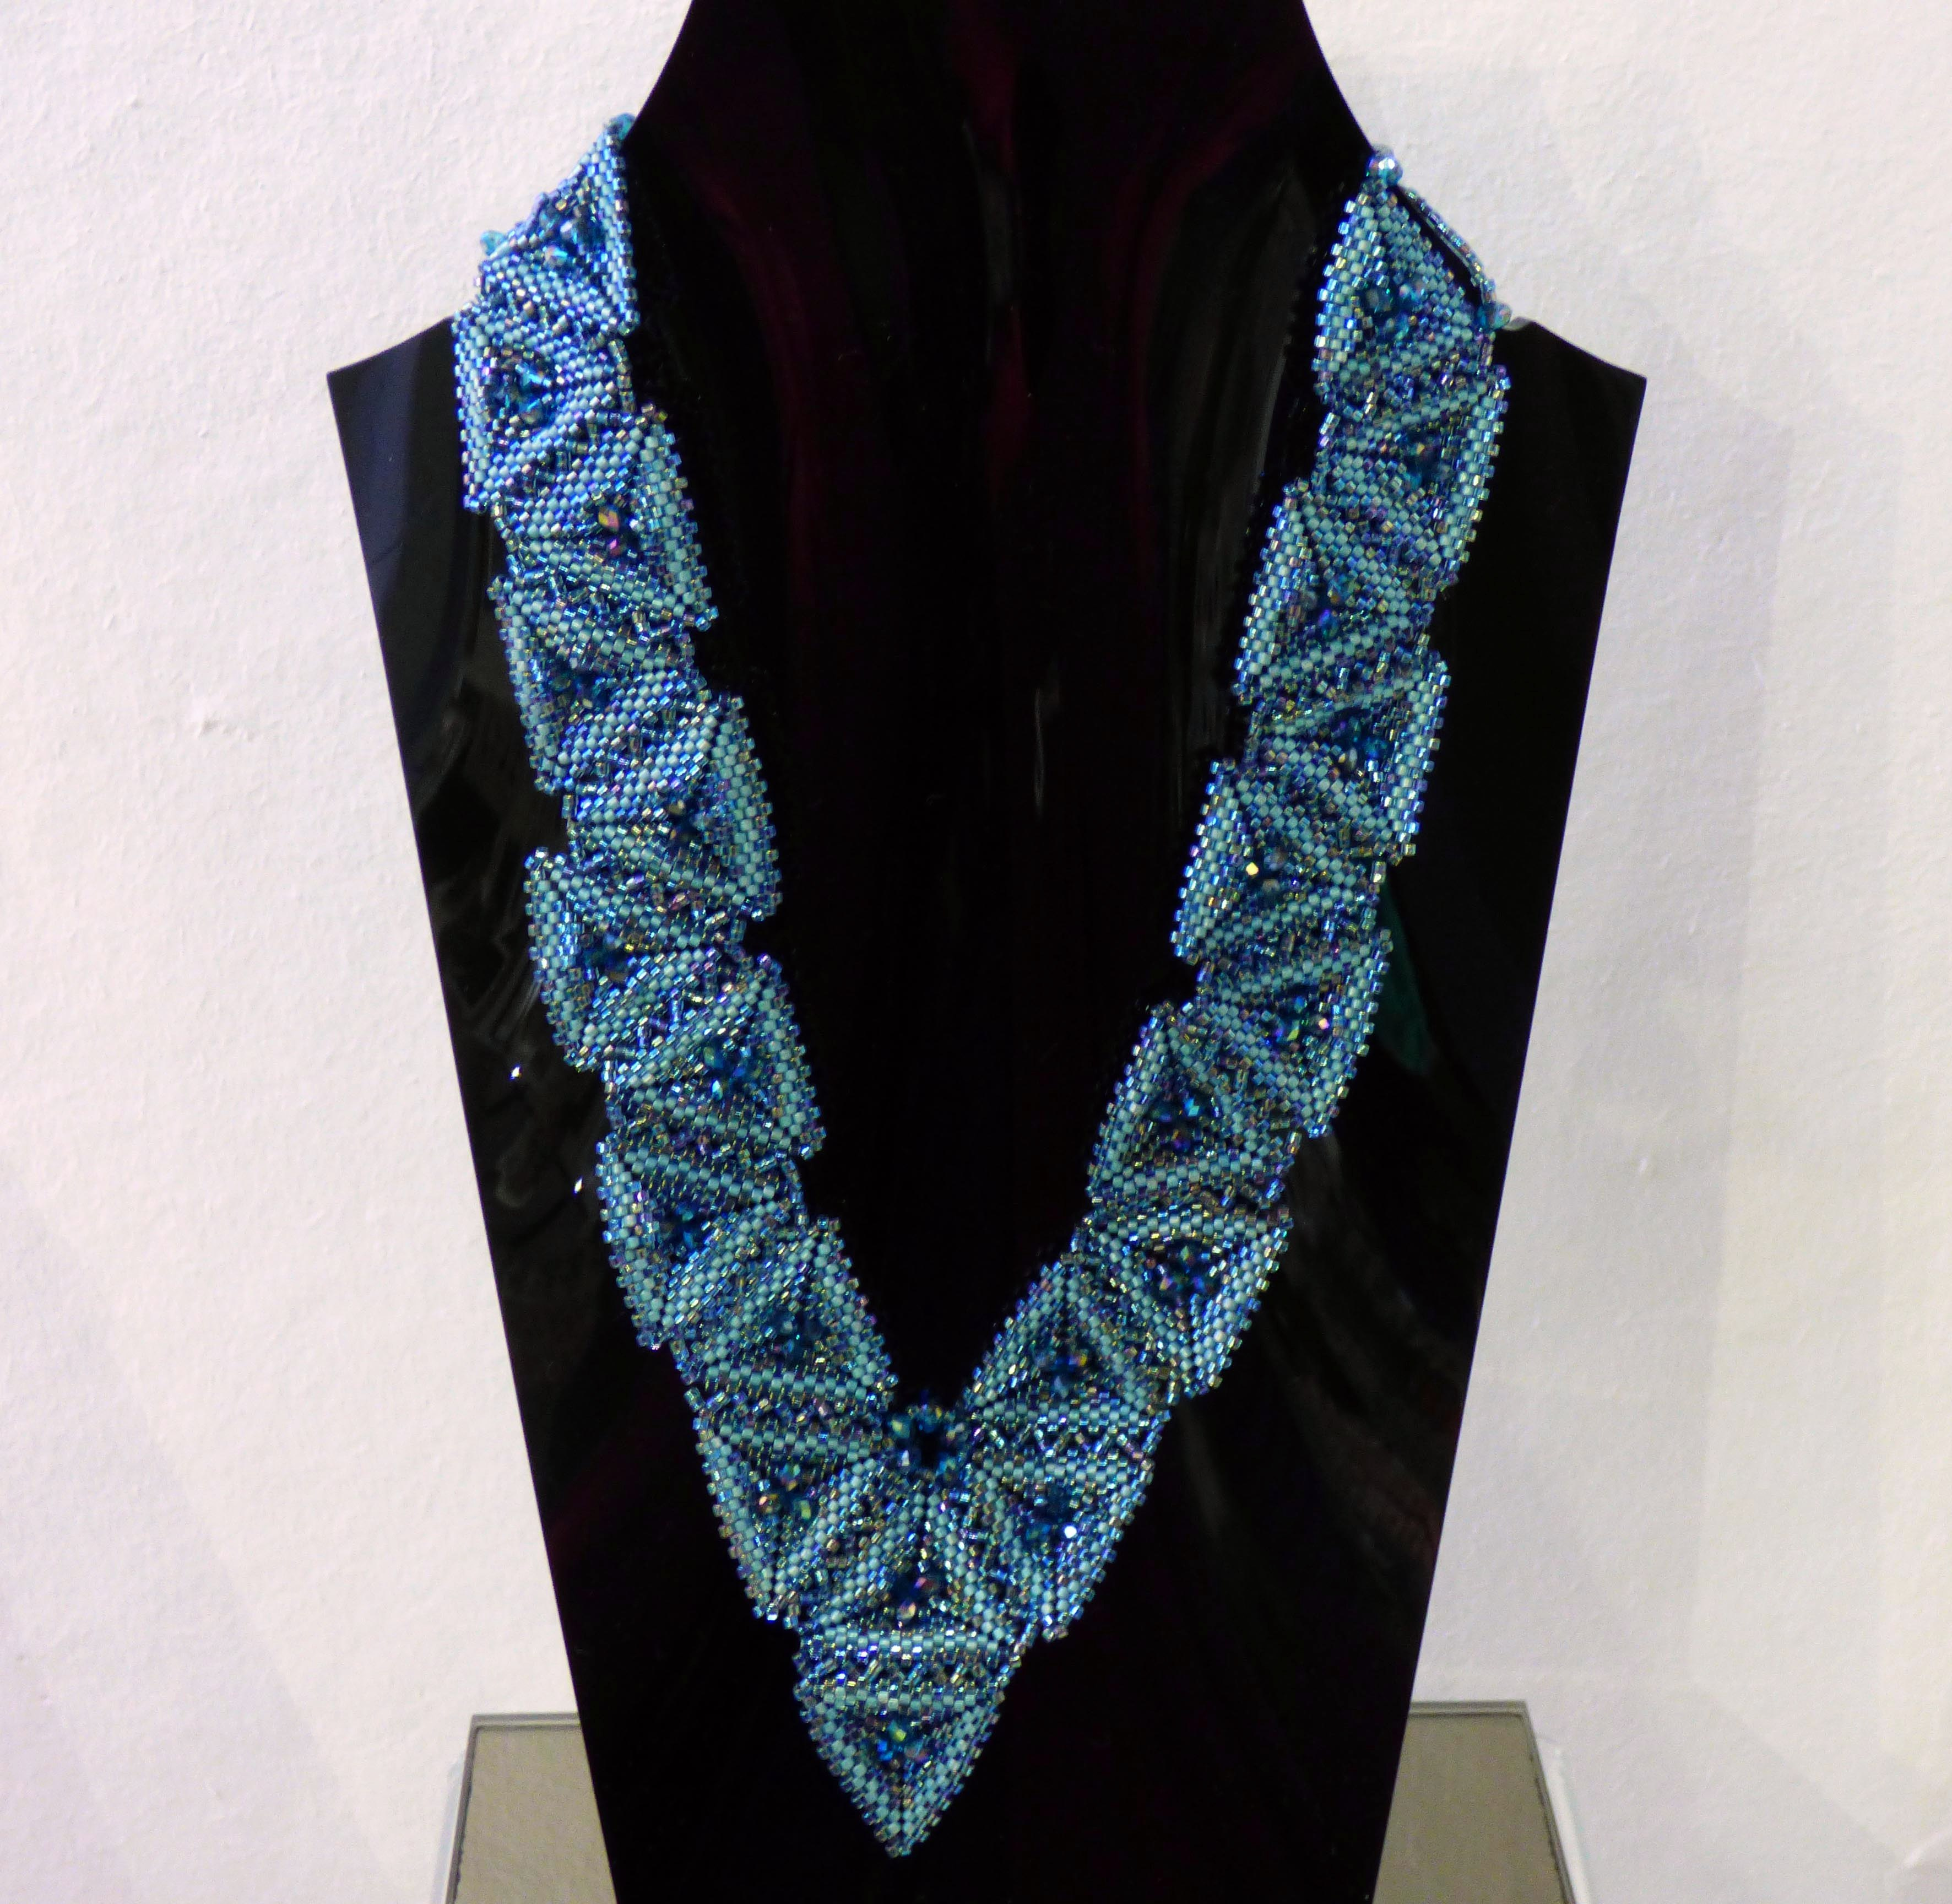 PYRAMIDS NECKLACE by Wendy Cartright, N.Wales EG, delicas and Swarovski beadings